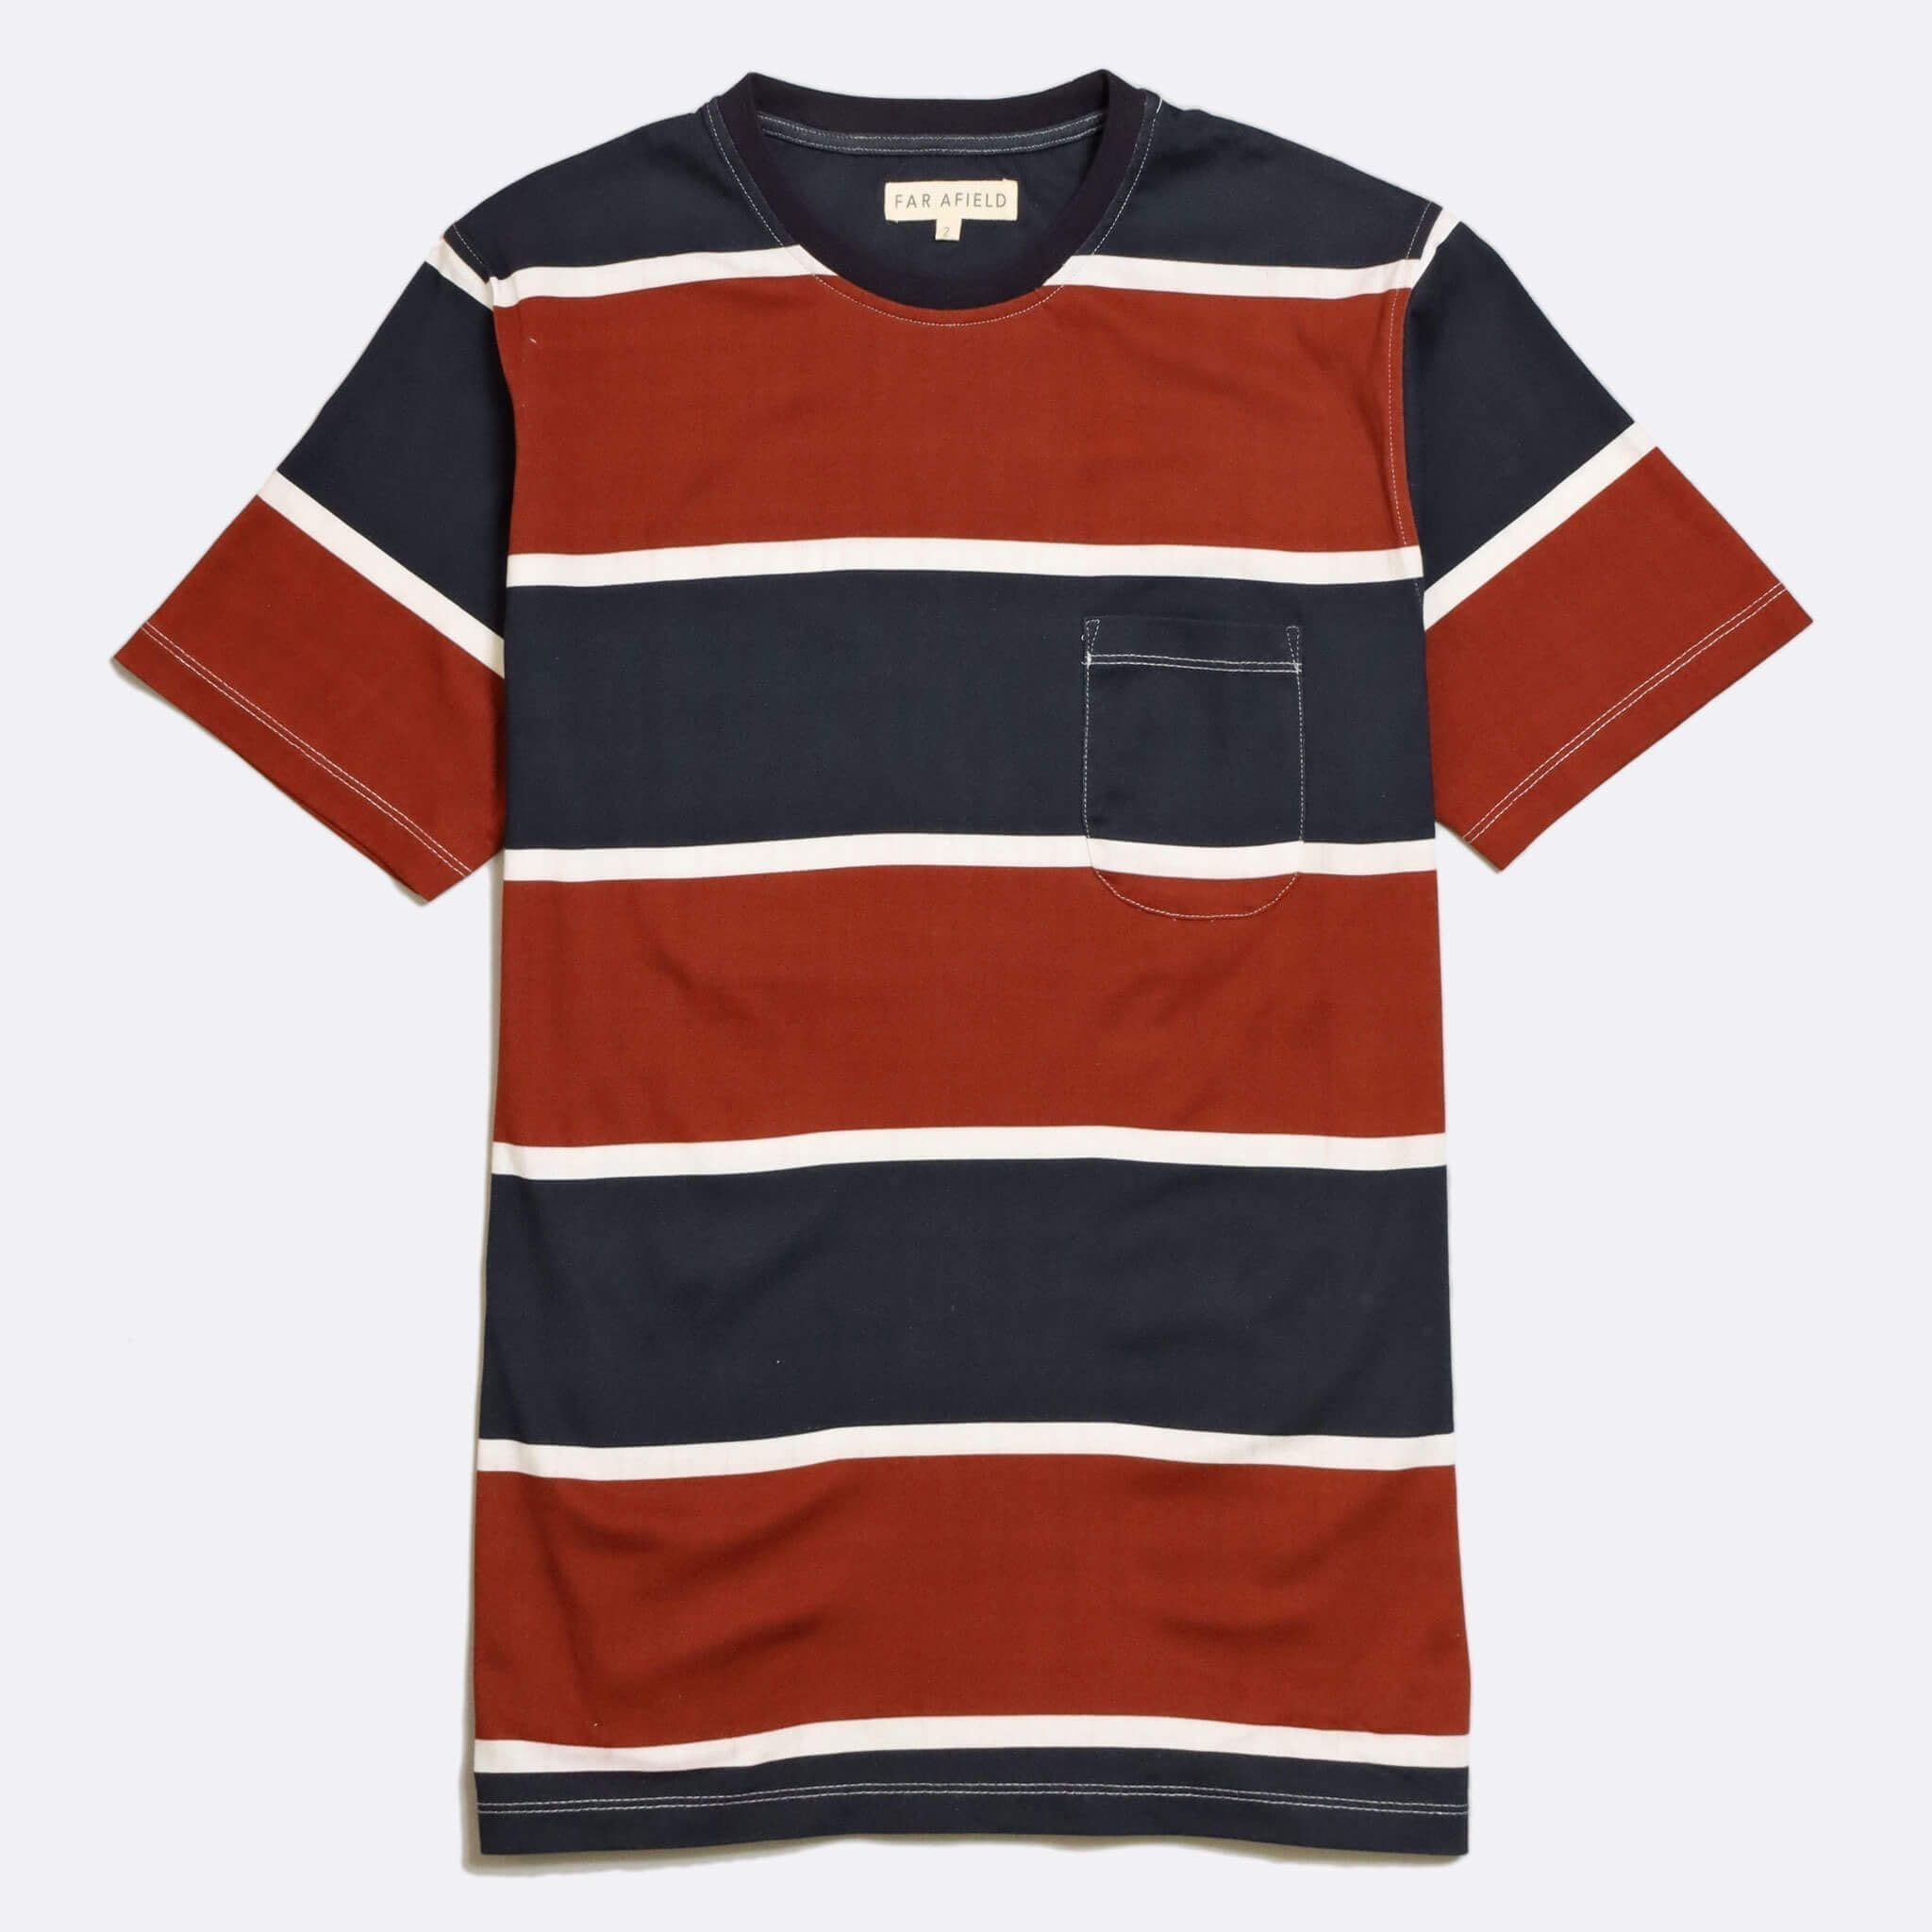 Far Afield Dos Stripe T-Shirt a Navy/Maroon Organic Cotton Fabric Short Sleeve Casual